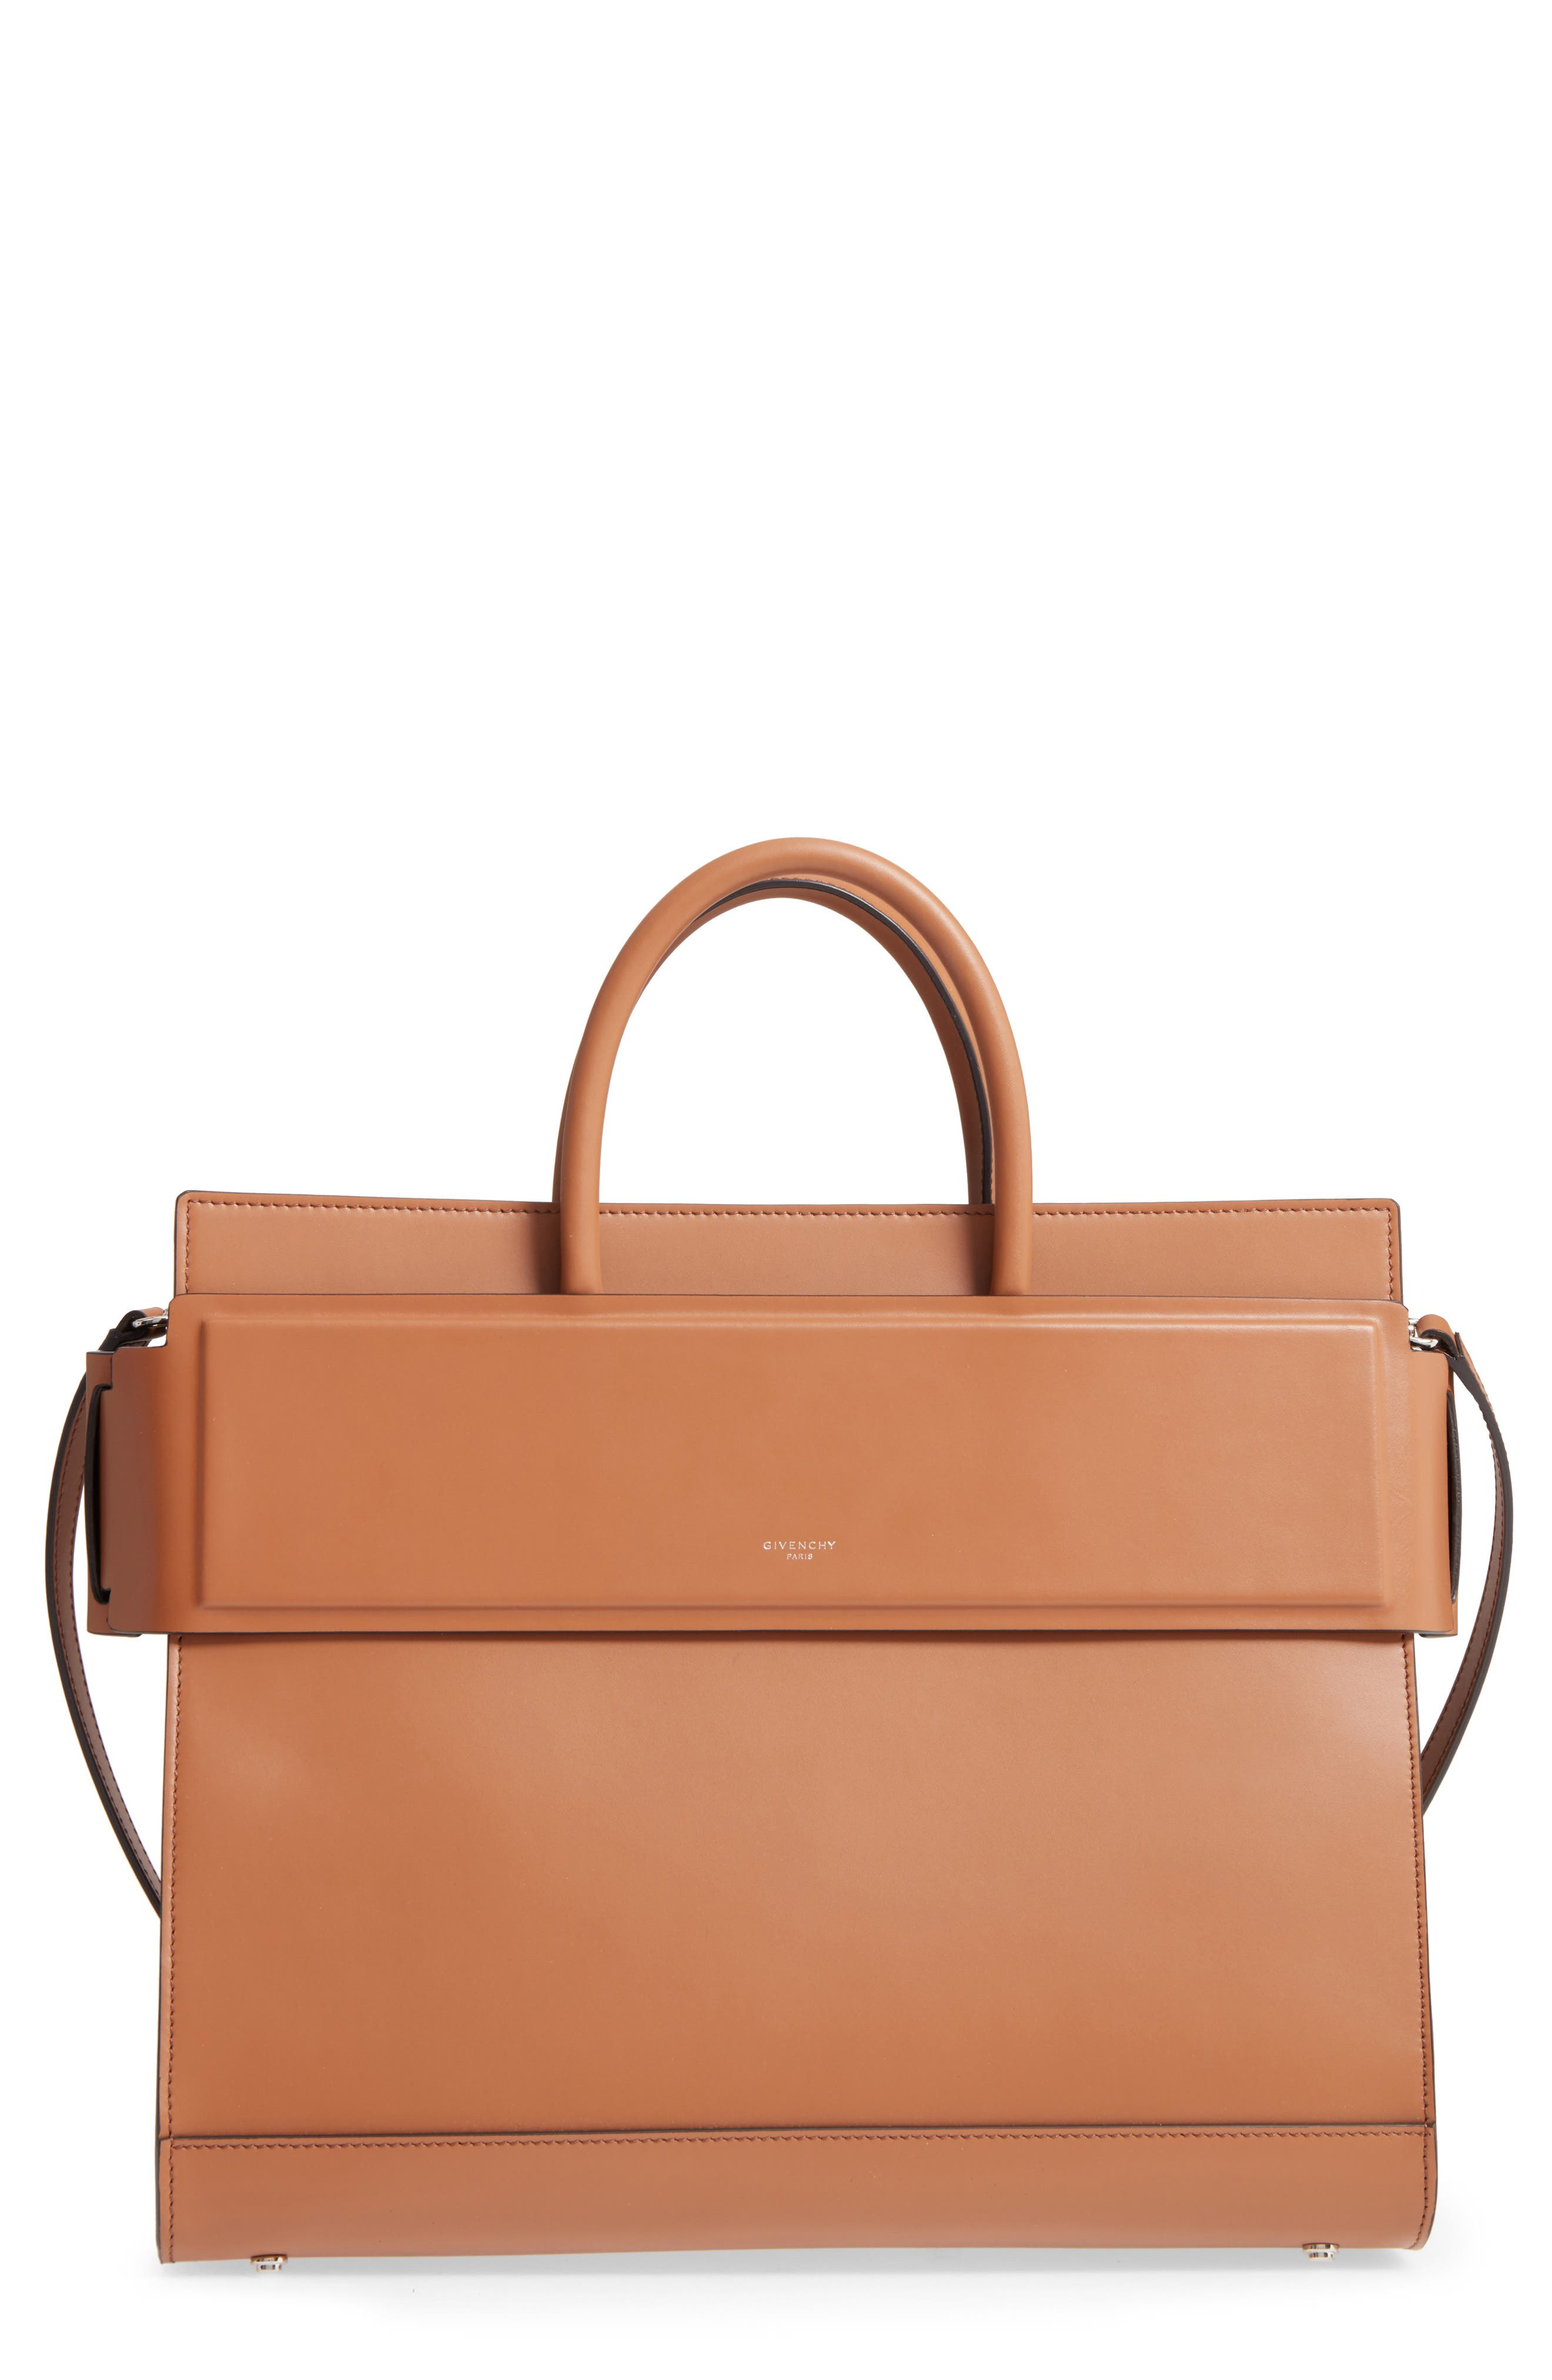 Main Image - Givenchy Horizon Calfskin Leather Tote